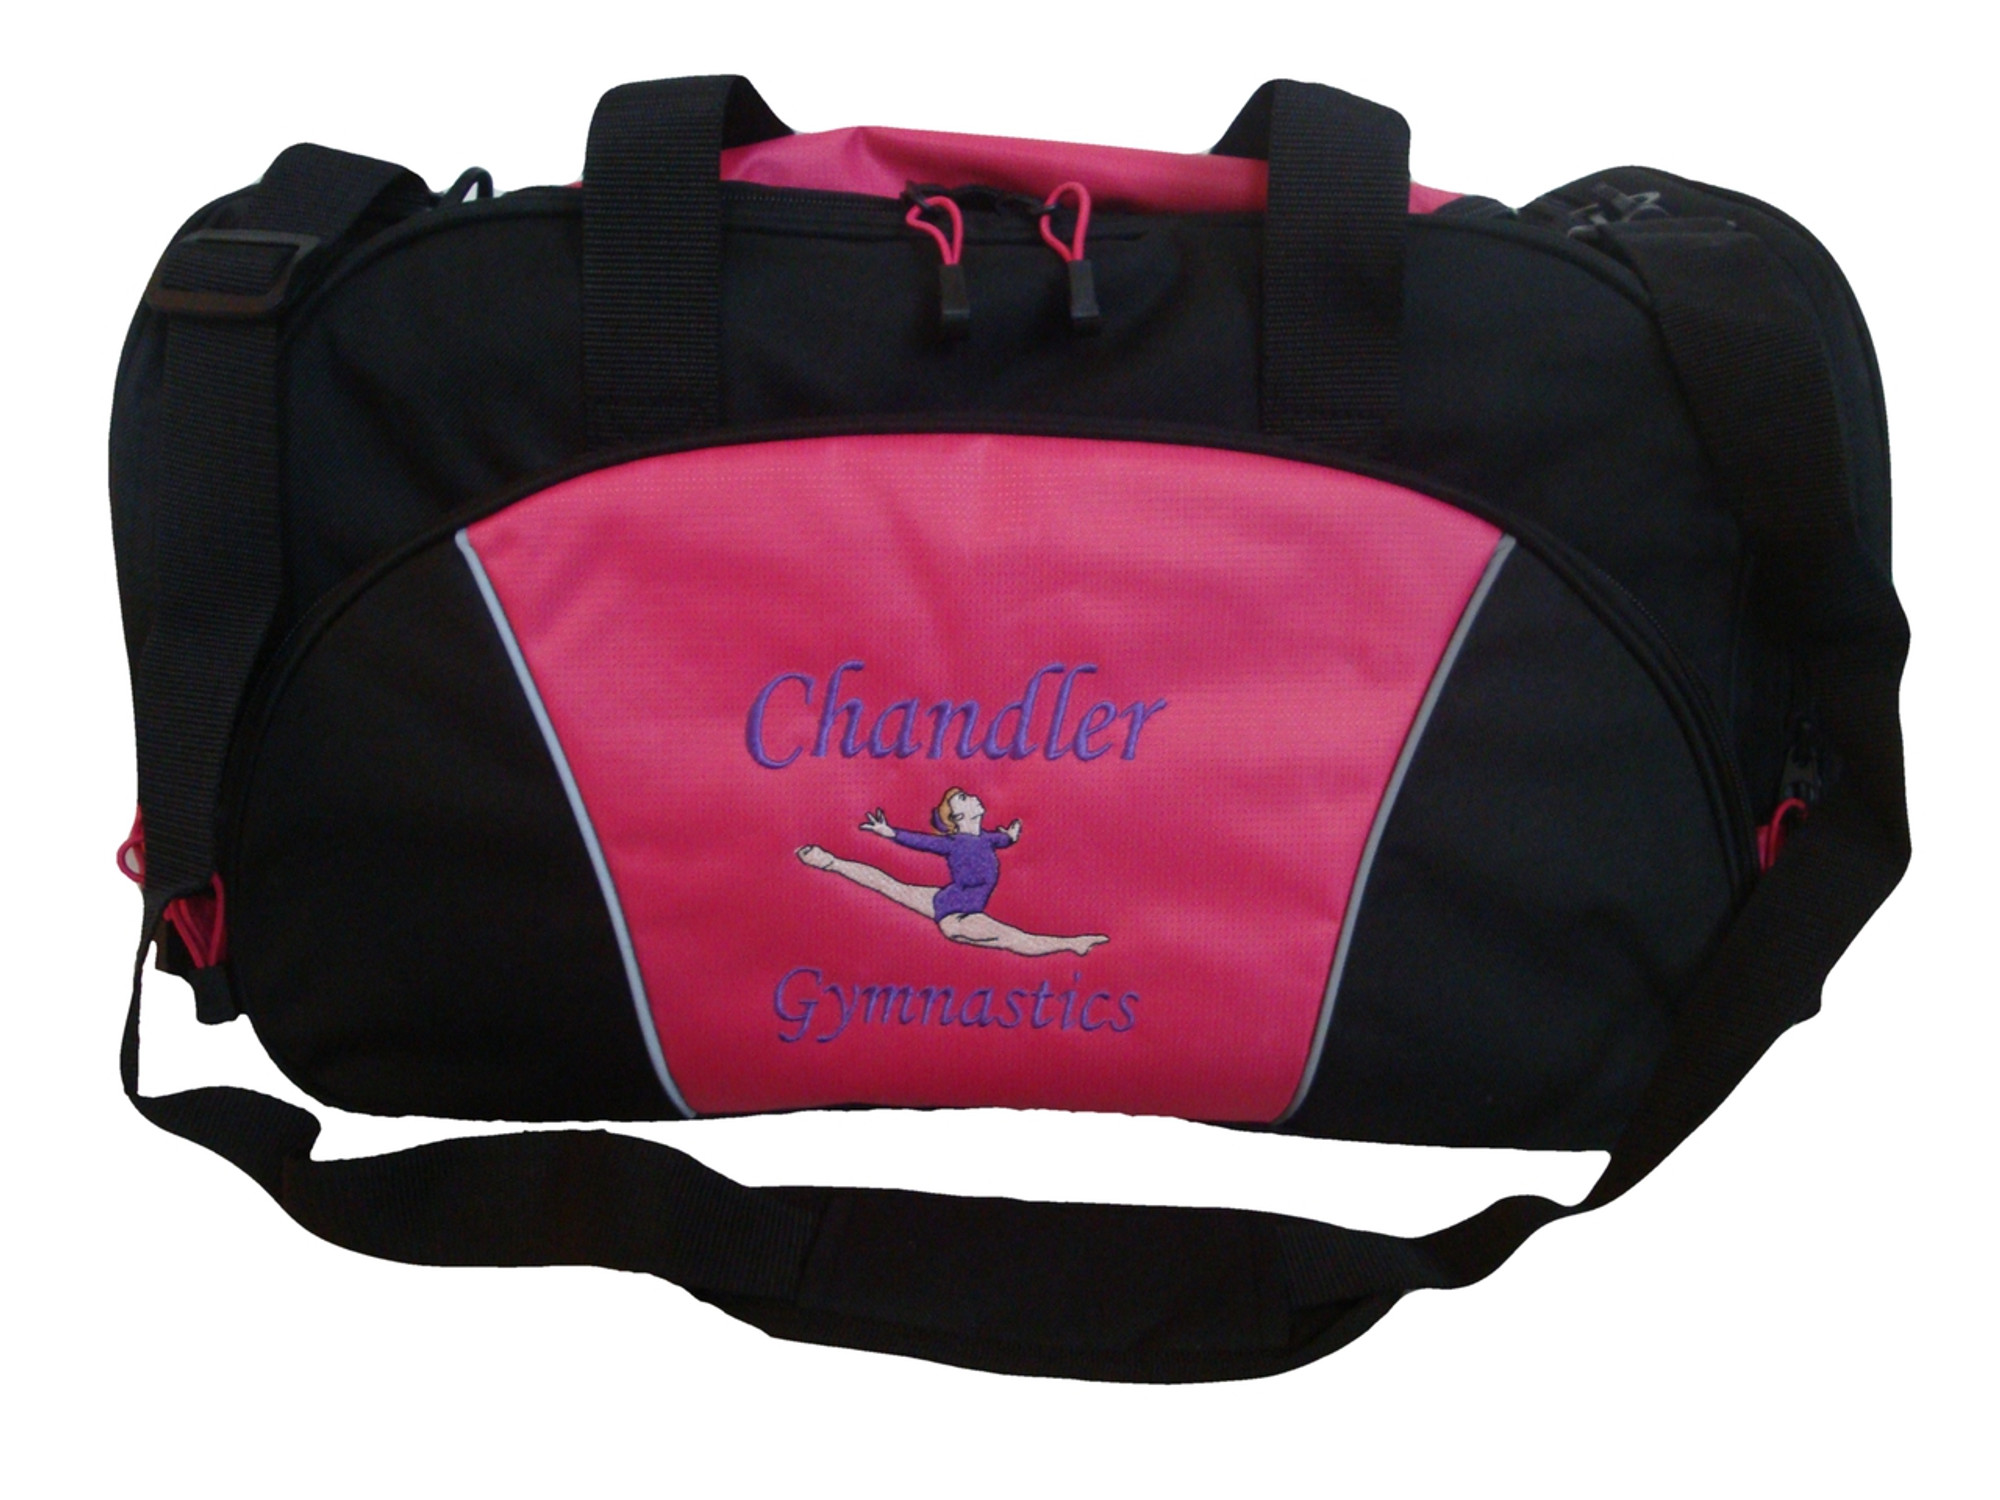 Personalized Gymnastics 3 Canvas Embroidered Shoulder Bag with FREE Personalization /& FREE SHIPPING B0750